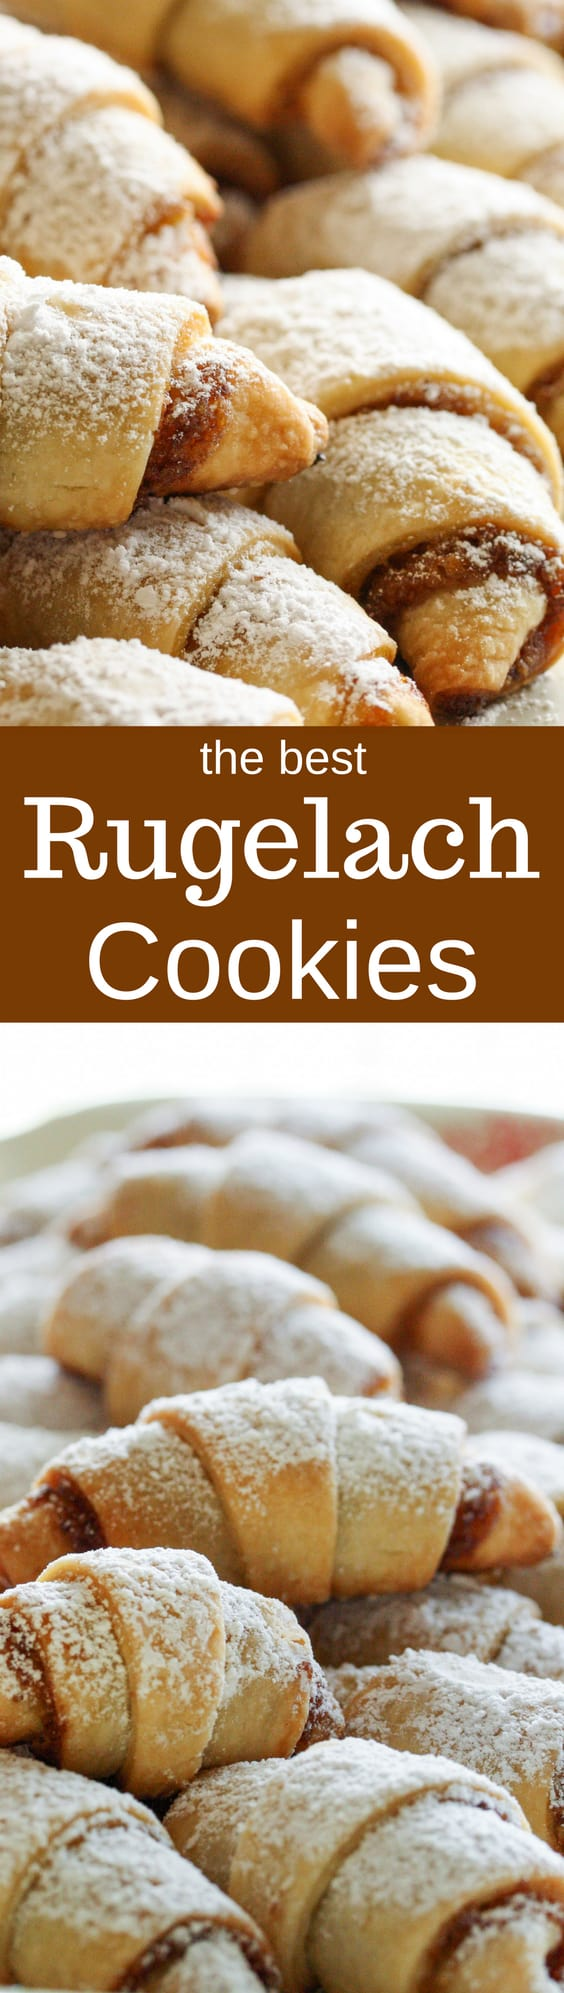 Rugelach Cookies - Crescent shaped cookies with tender dough inside, slightly crisp outside, with a hint of a sweet, nutty chocolate filling. www.savingdessert.com